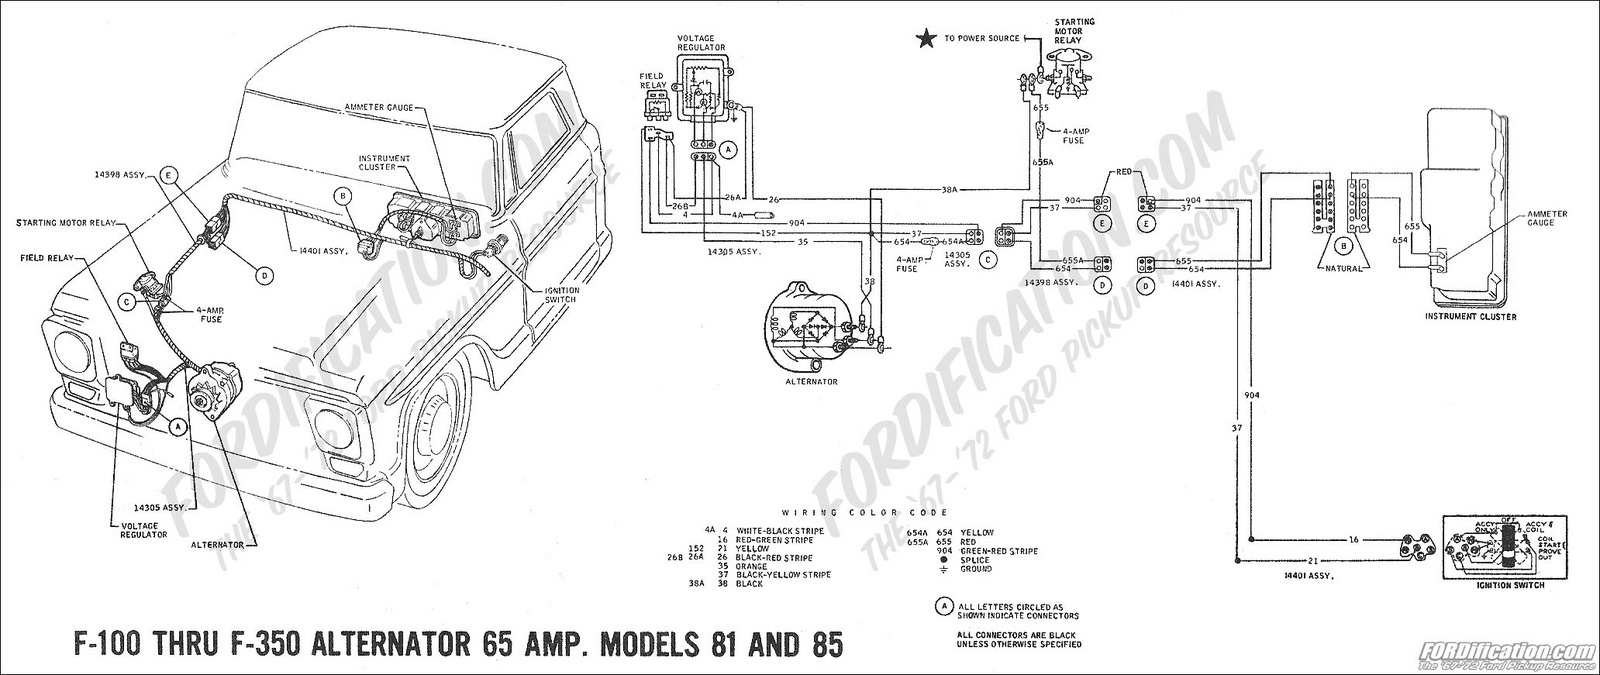 81 Ford F100 Wiring Diagram - Wiring Diagram Data Oreo - Ford Starter Solenoid Wiring Diagram